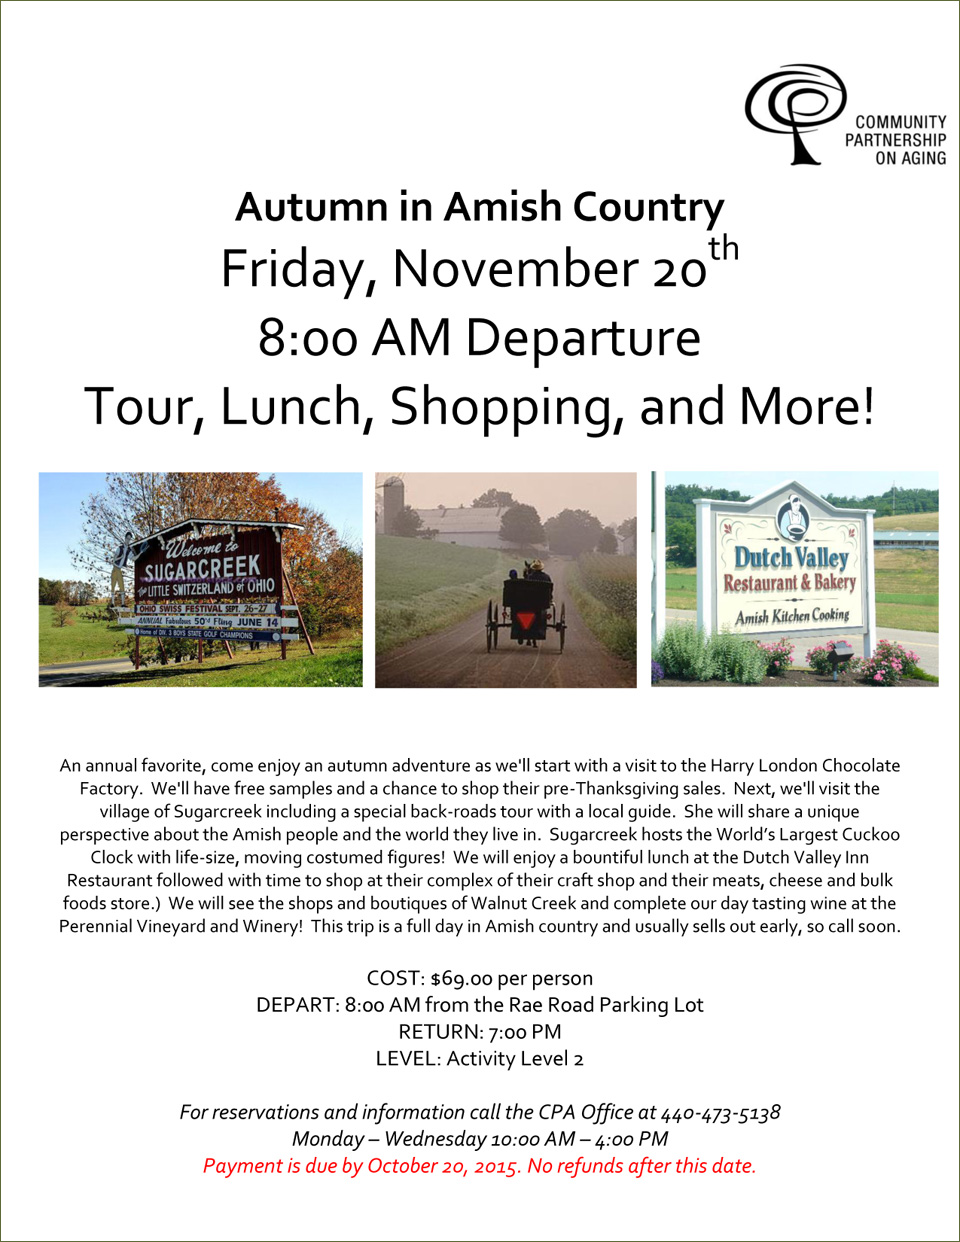 Autumn In Amish Country - November 20th 2015